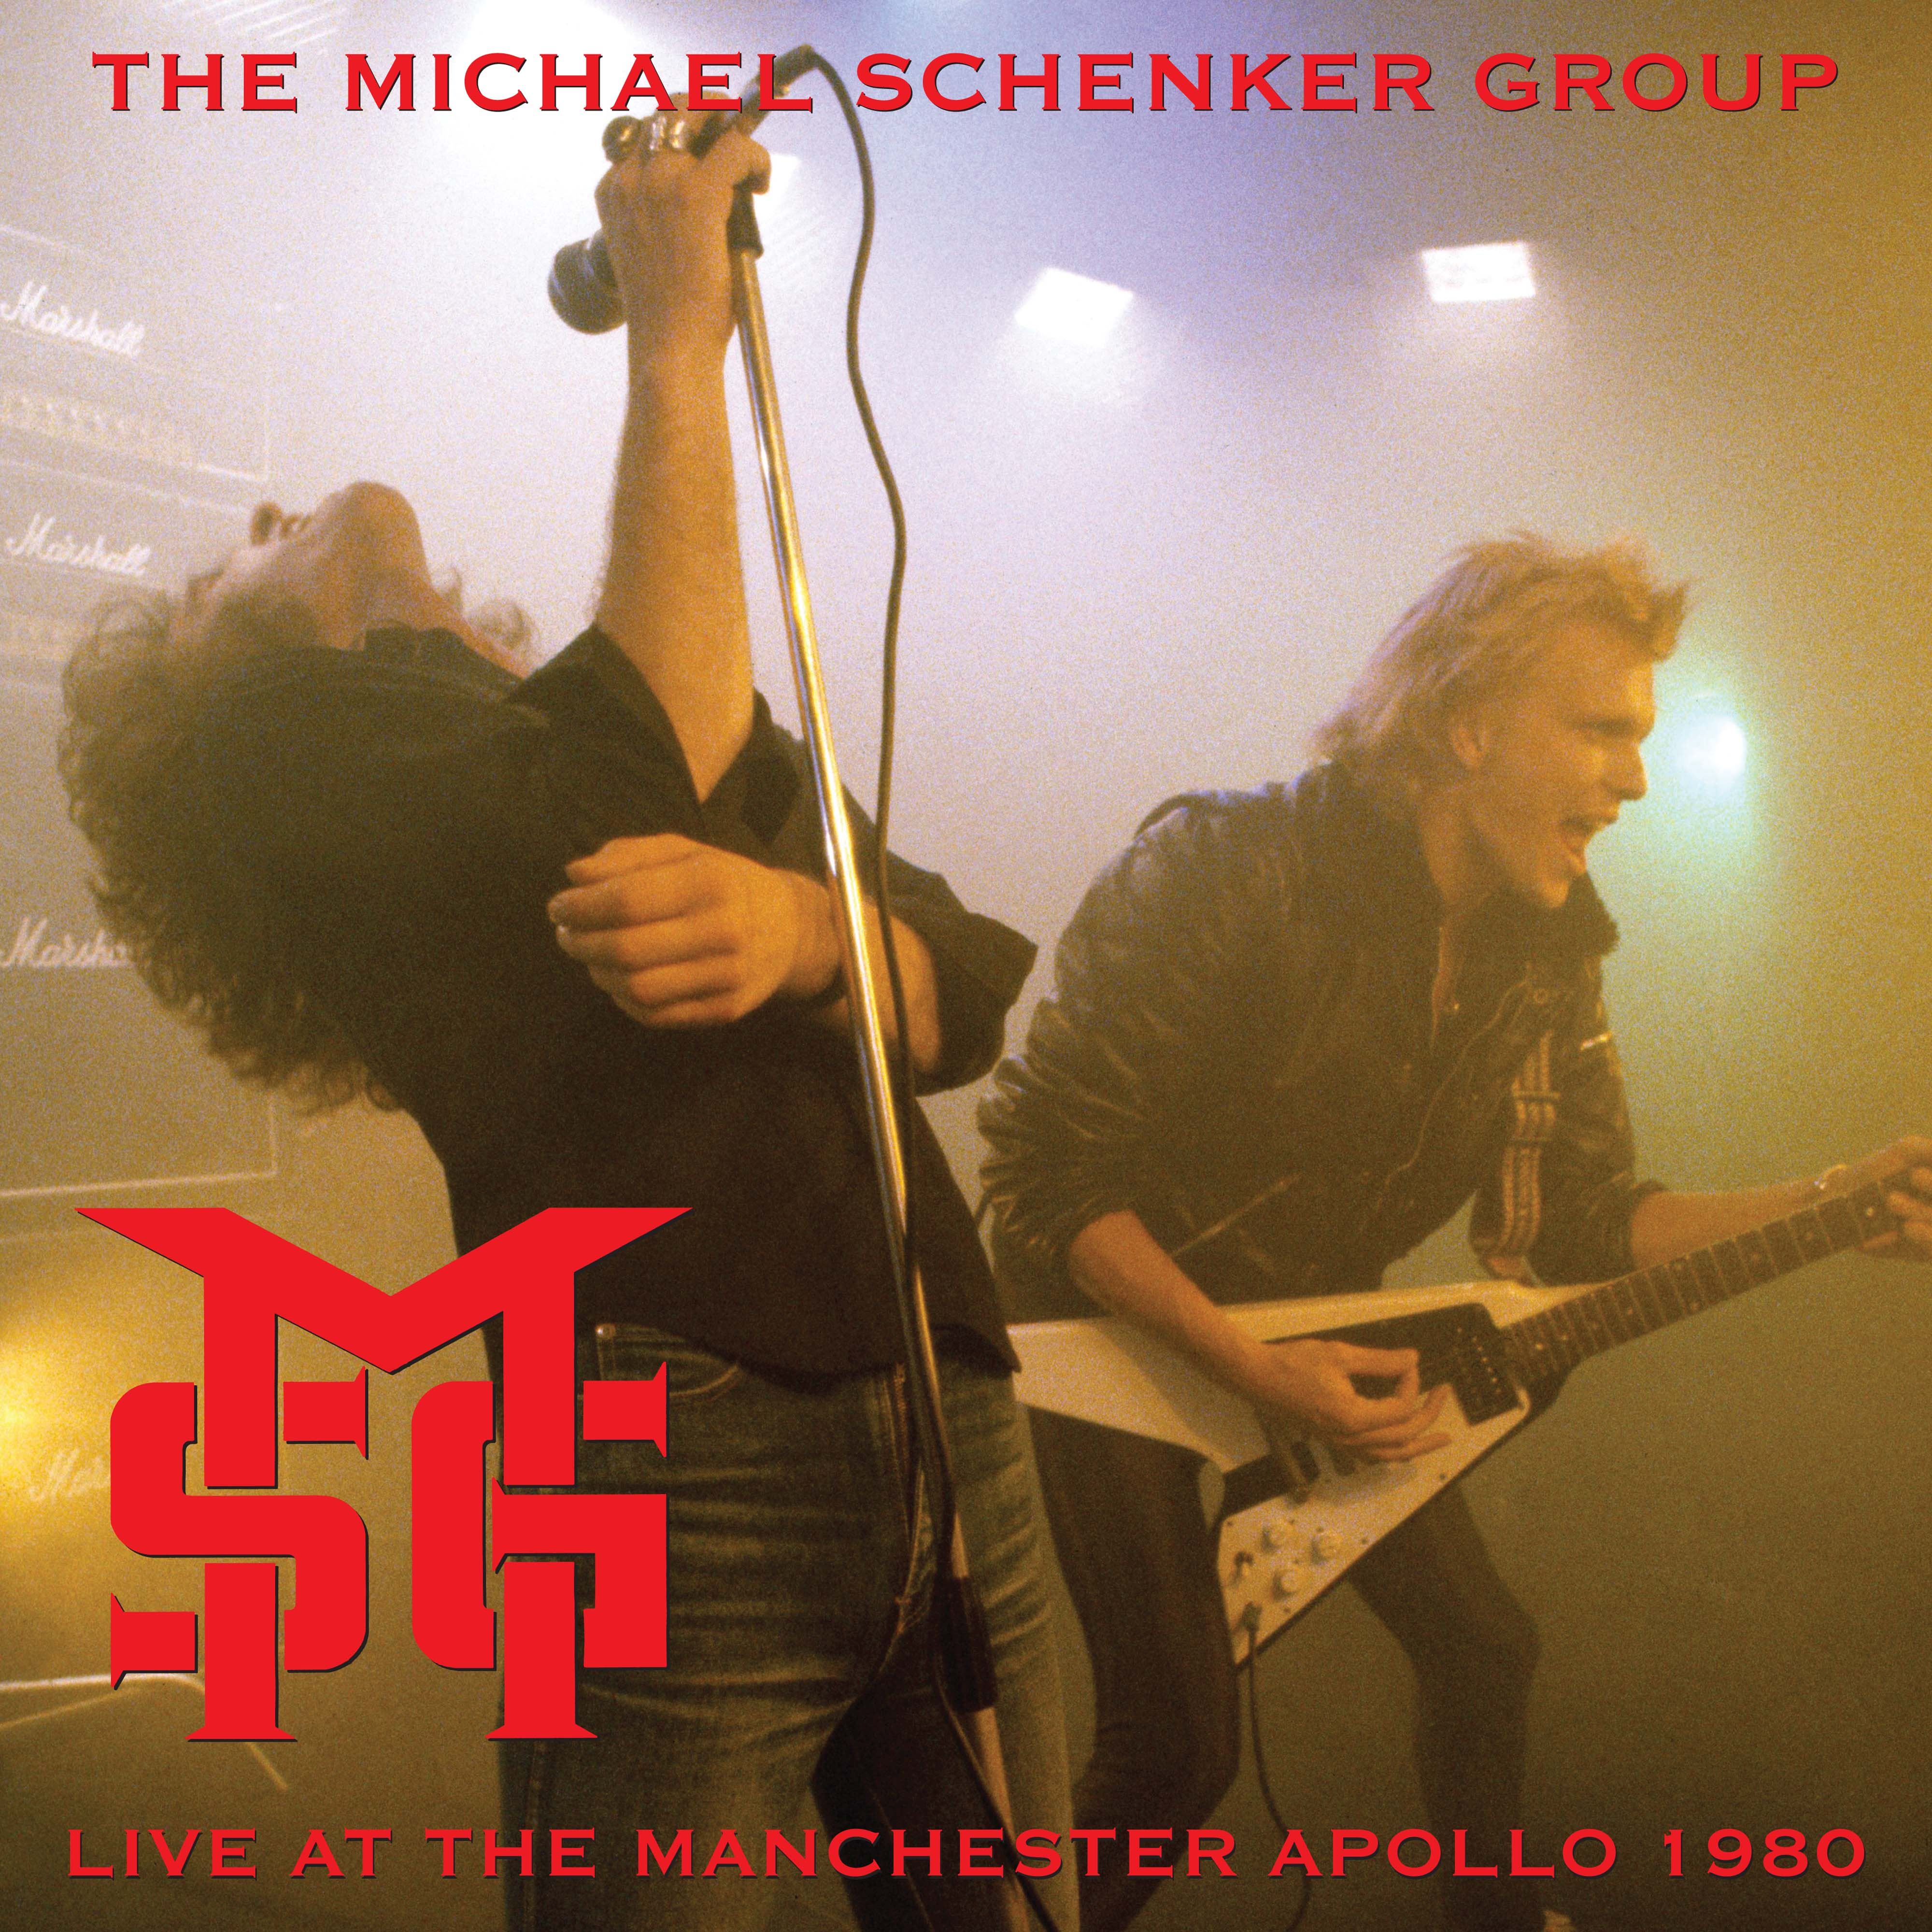 Michael Schenker Group - Live In Manchester 1980 (Rsd) (Red) [Record Store Day] [RSD Drops 2021]